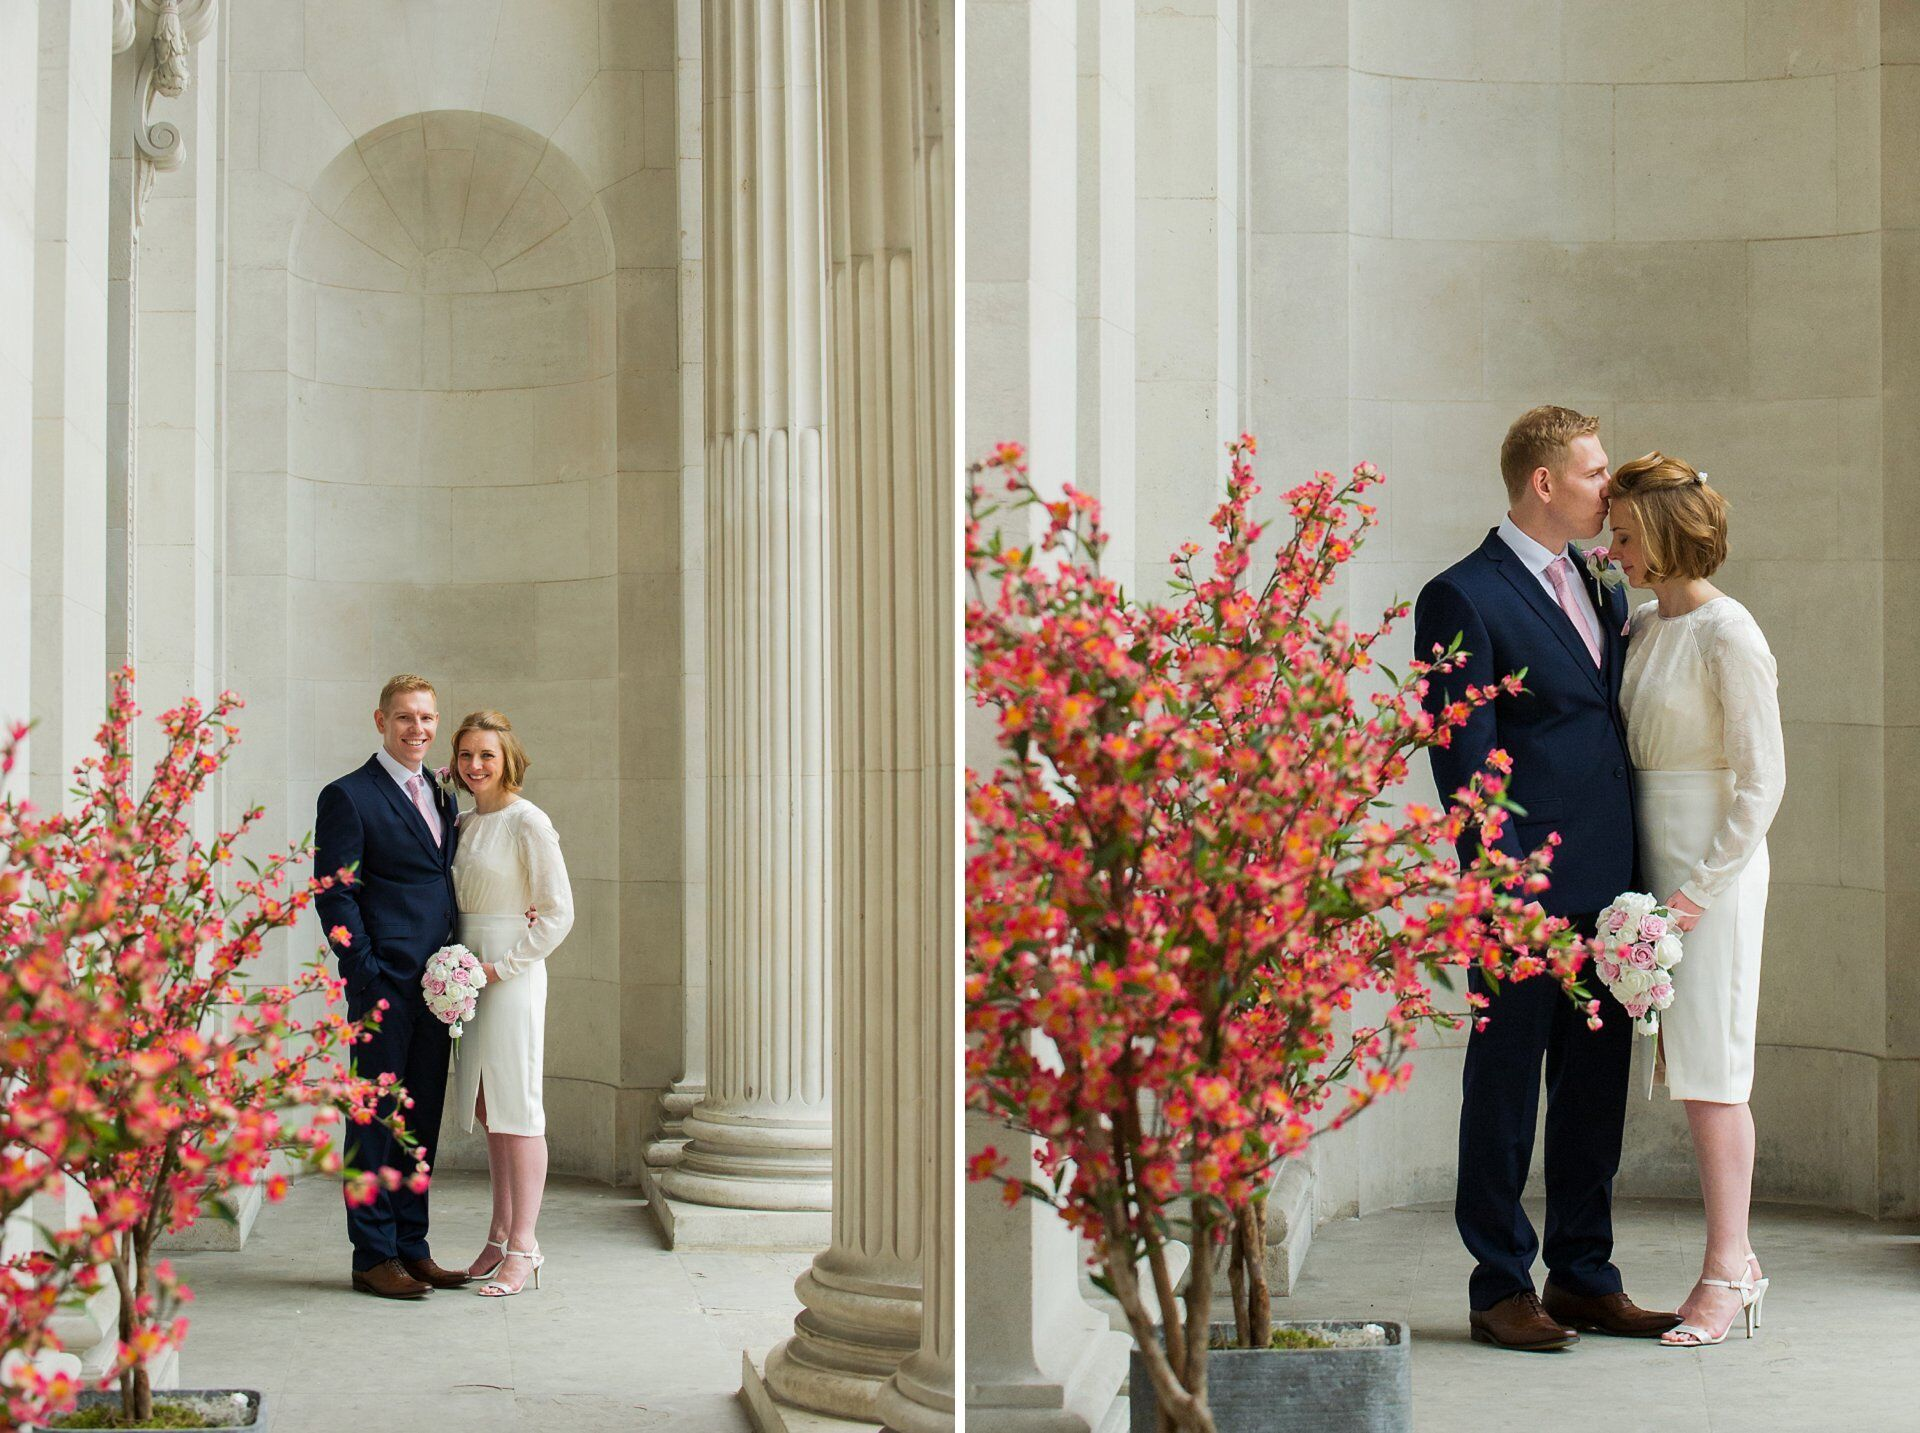 stylish london wedding venue old marylebone town hall for elegant portraits